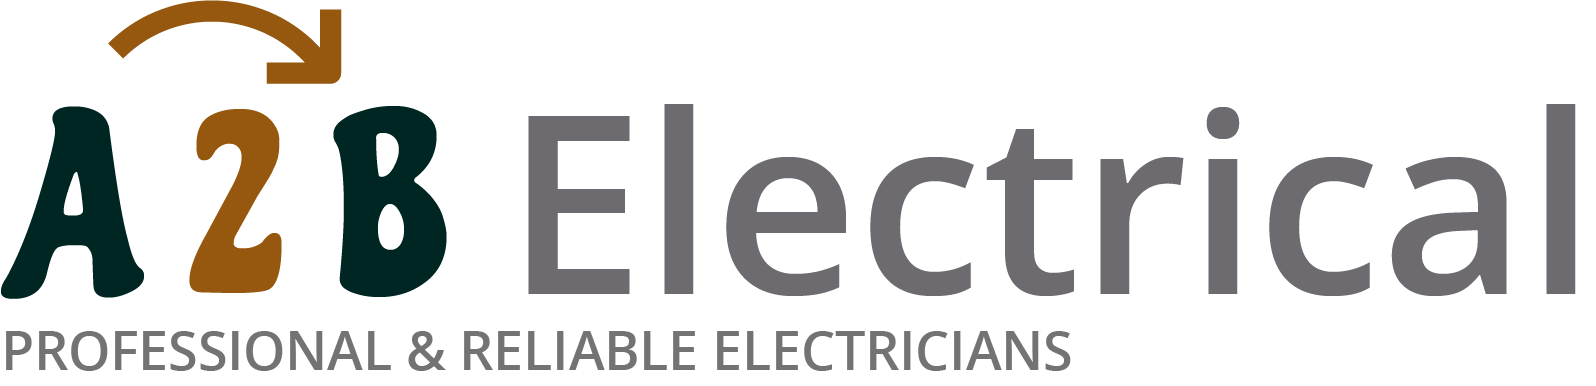 If you have electrical wiring problems in Hockley, we can provide an electrician to have a look for you.